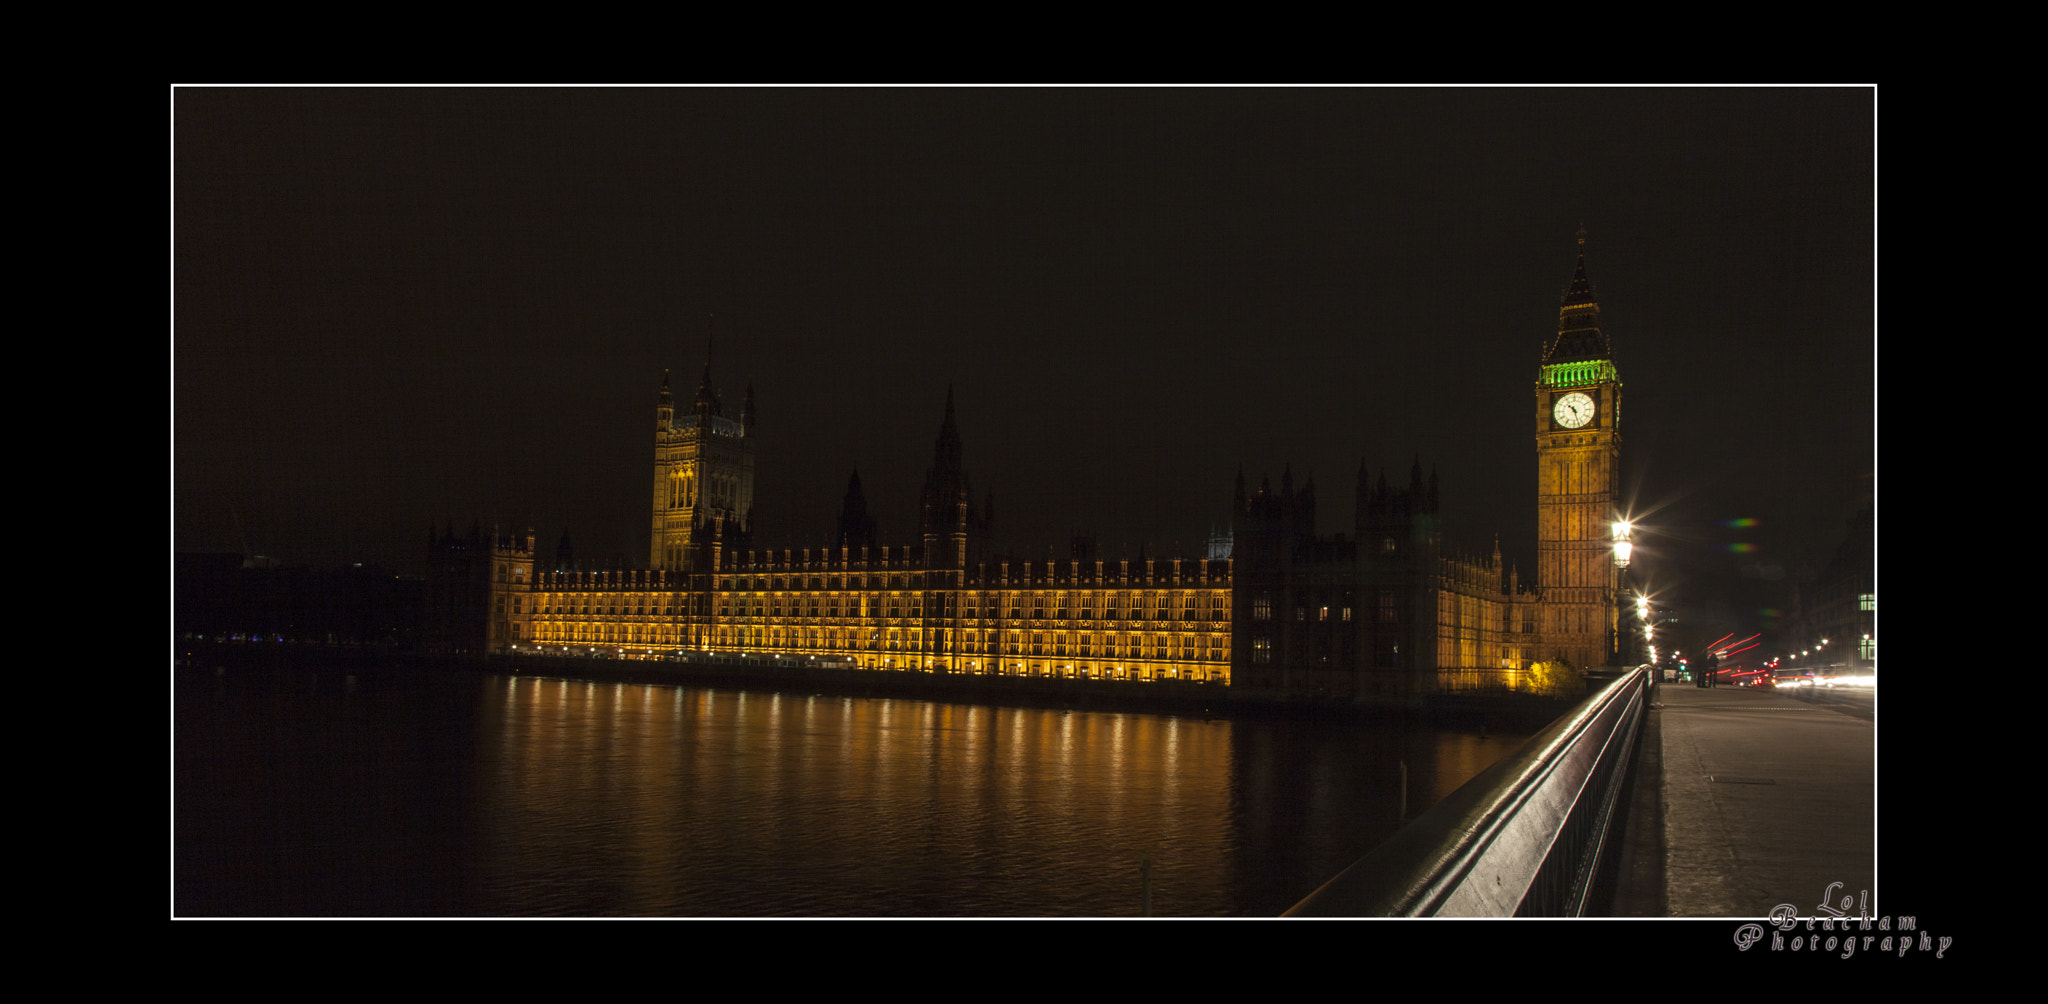 Photograph Houses Of Parliament by Lol Beacham on 500px